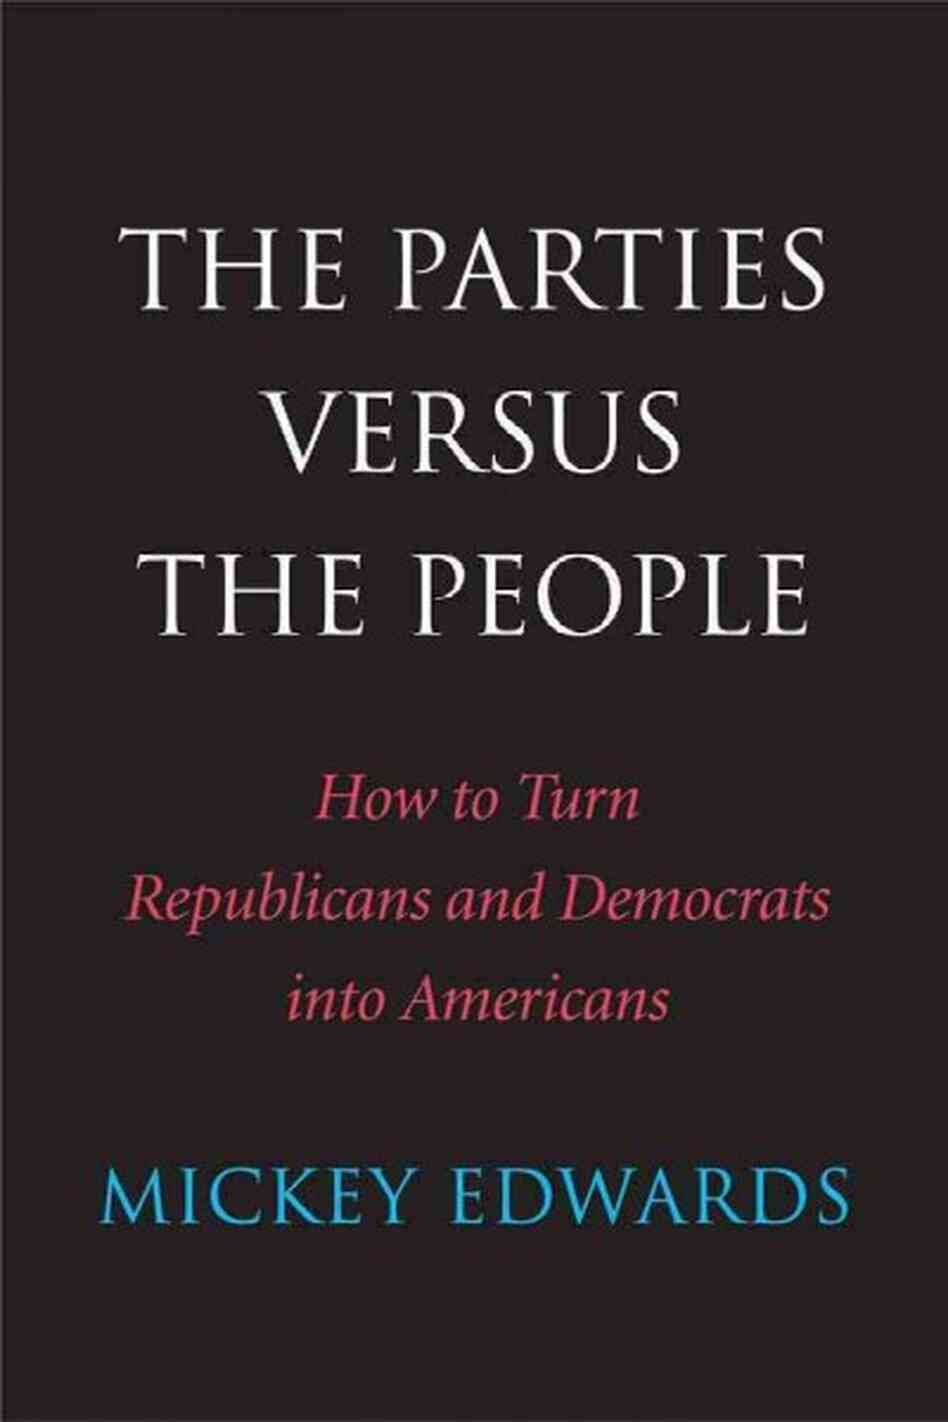 The Parties Versus the People